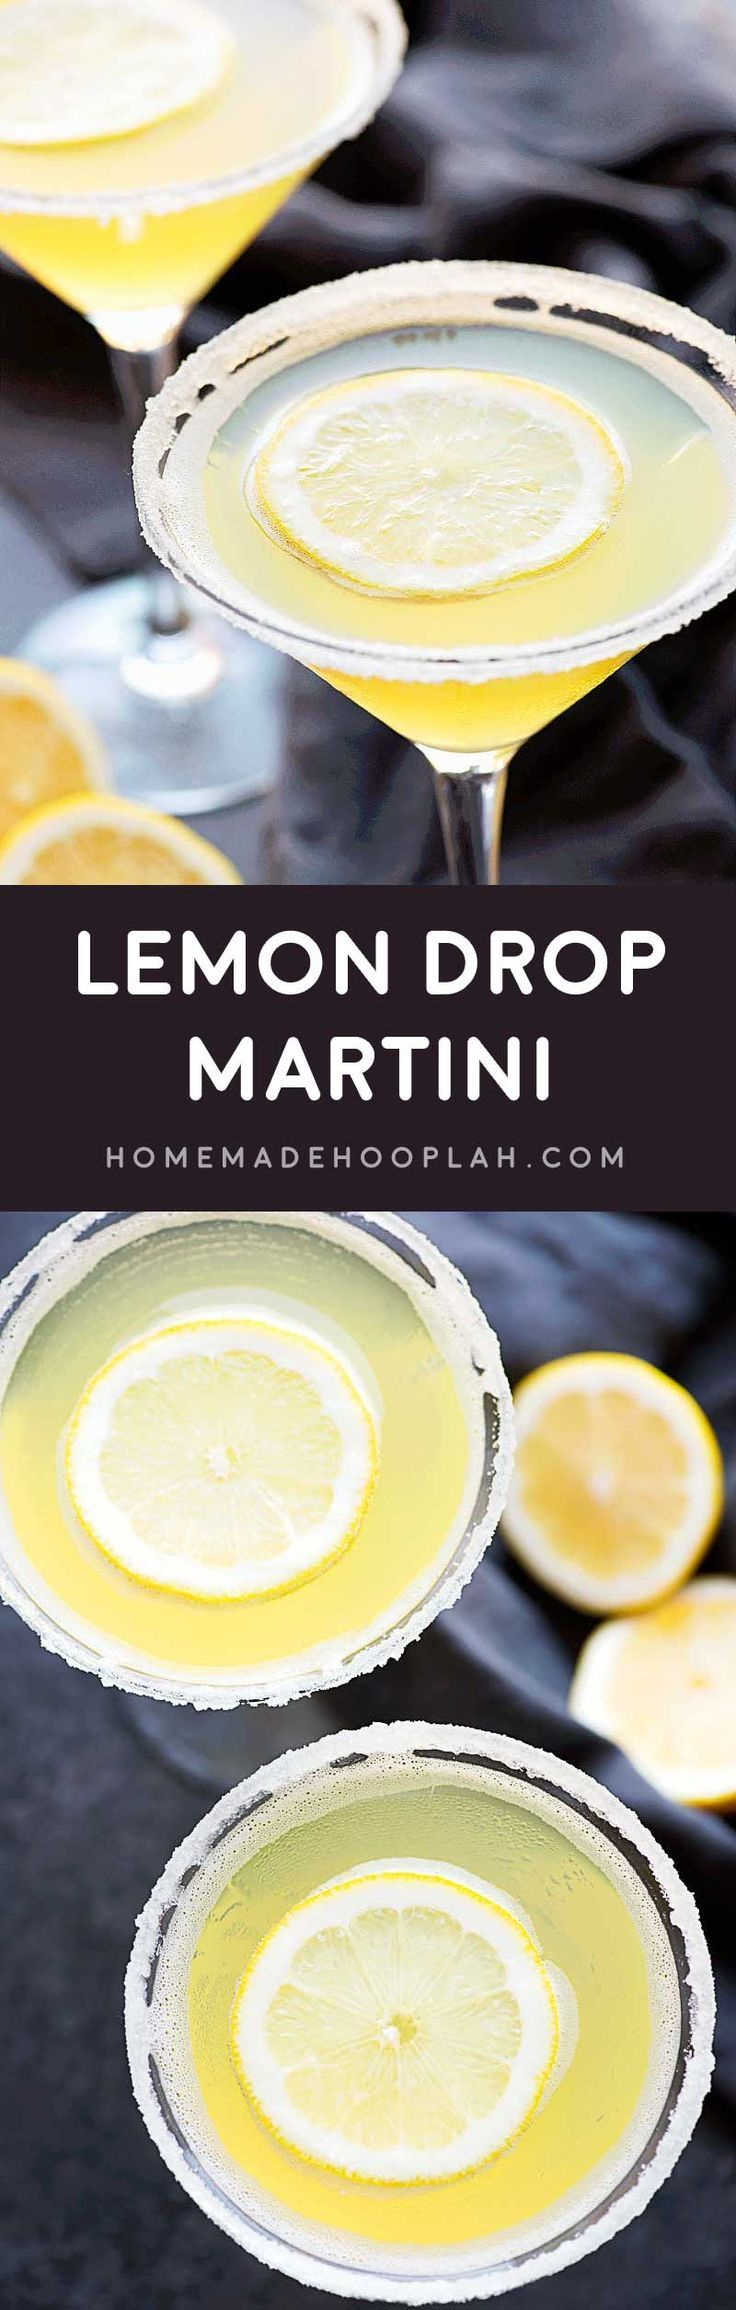 Lemon Drop Martini! A deliciously sweet martini made with limoncello, vodka, sweet and sour mix, and a dash of lemon. Dress it up with lemon-flavored sugar along the rim! | HomemadeHooplah.com